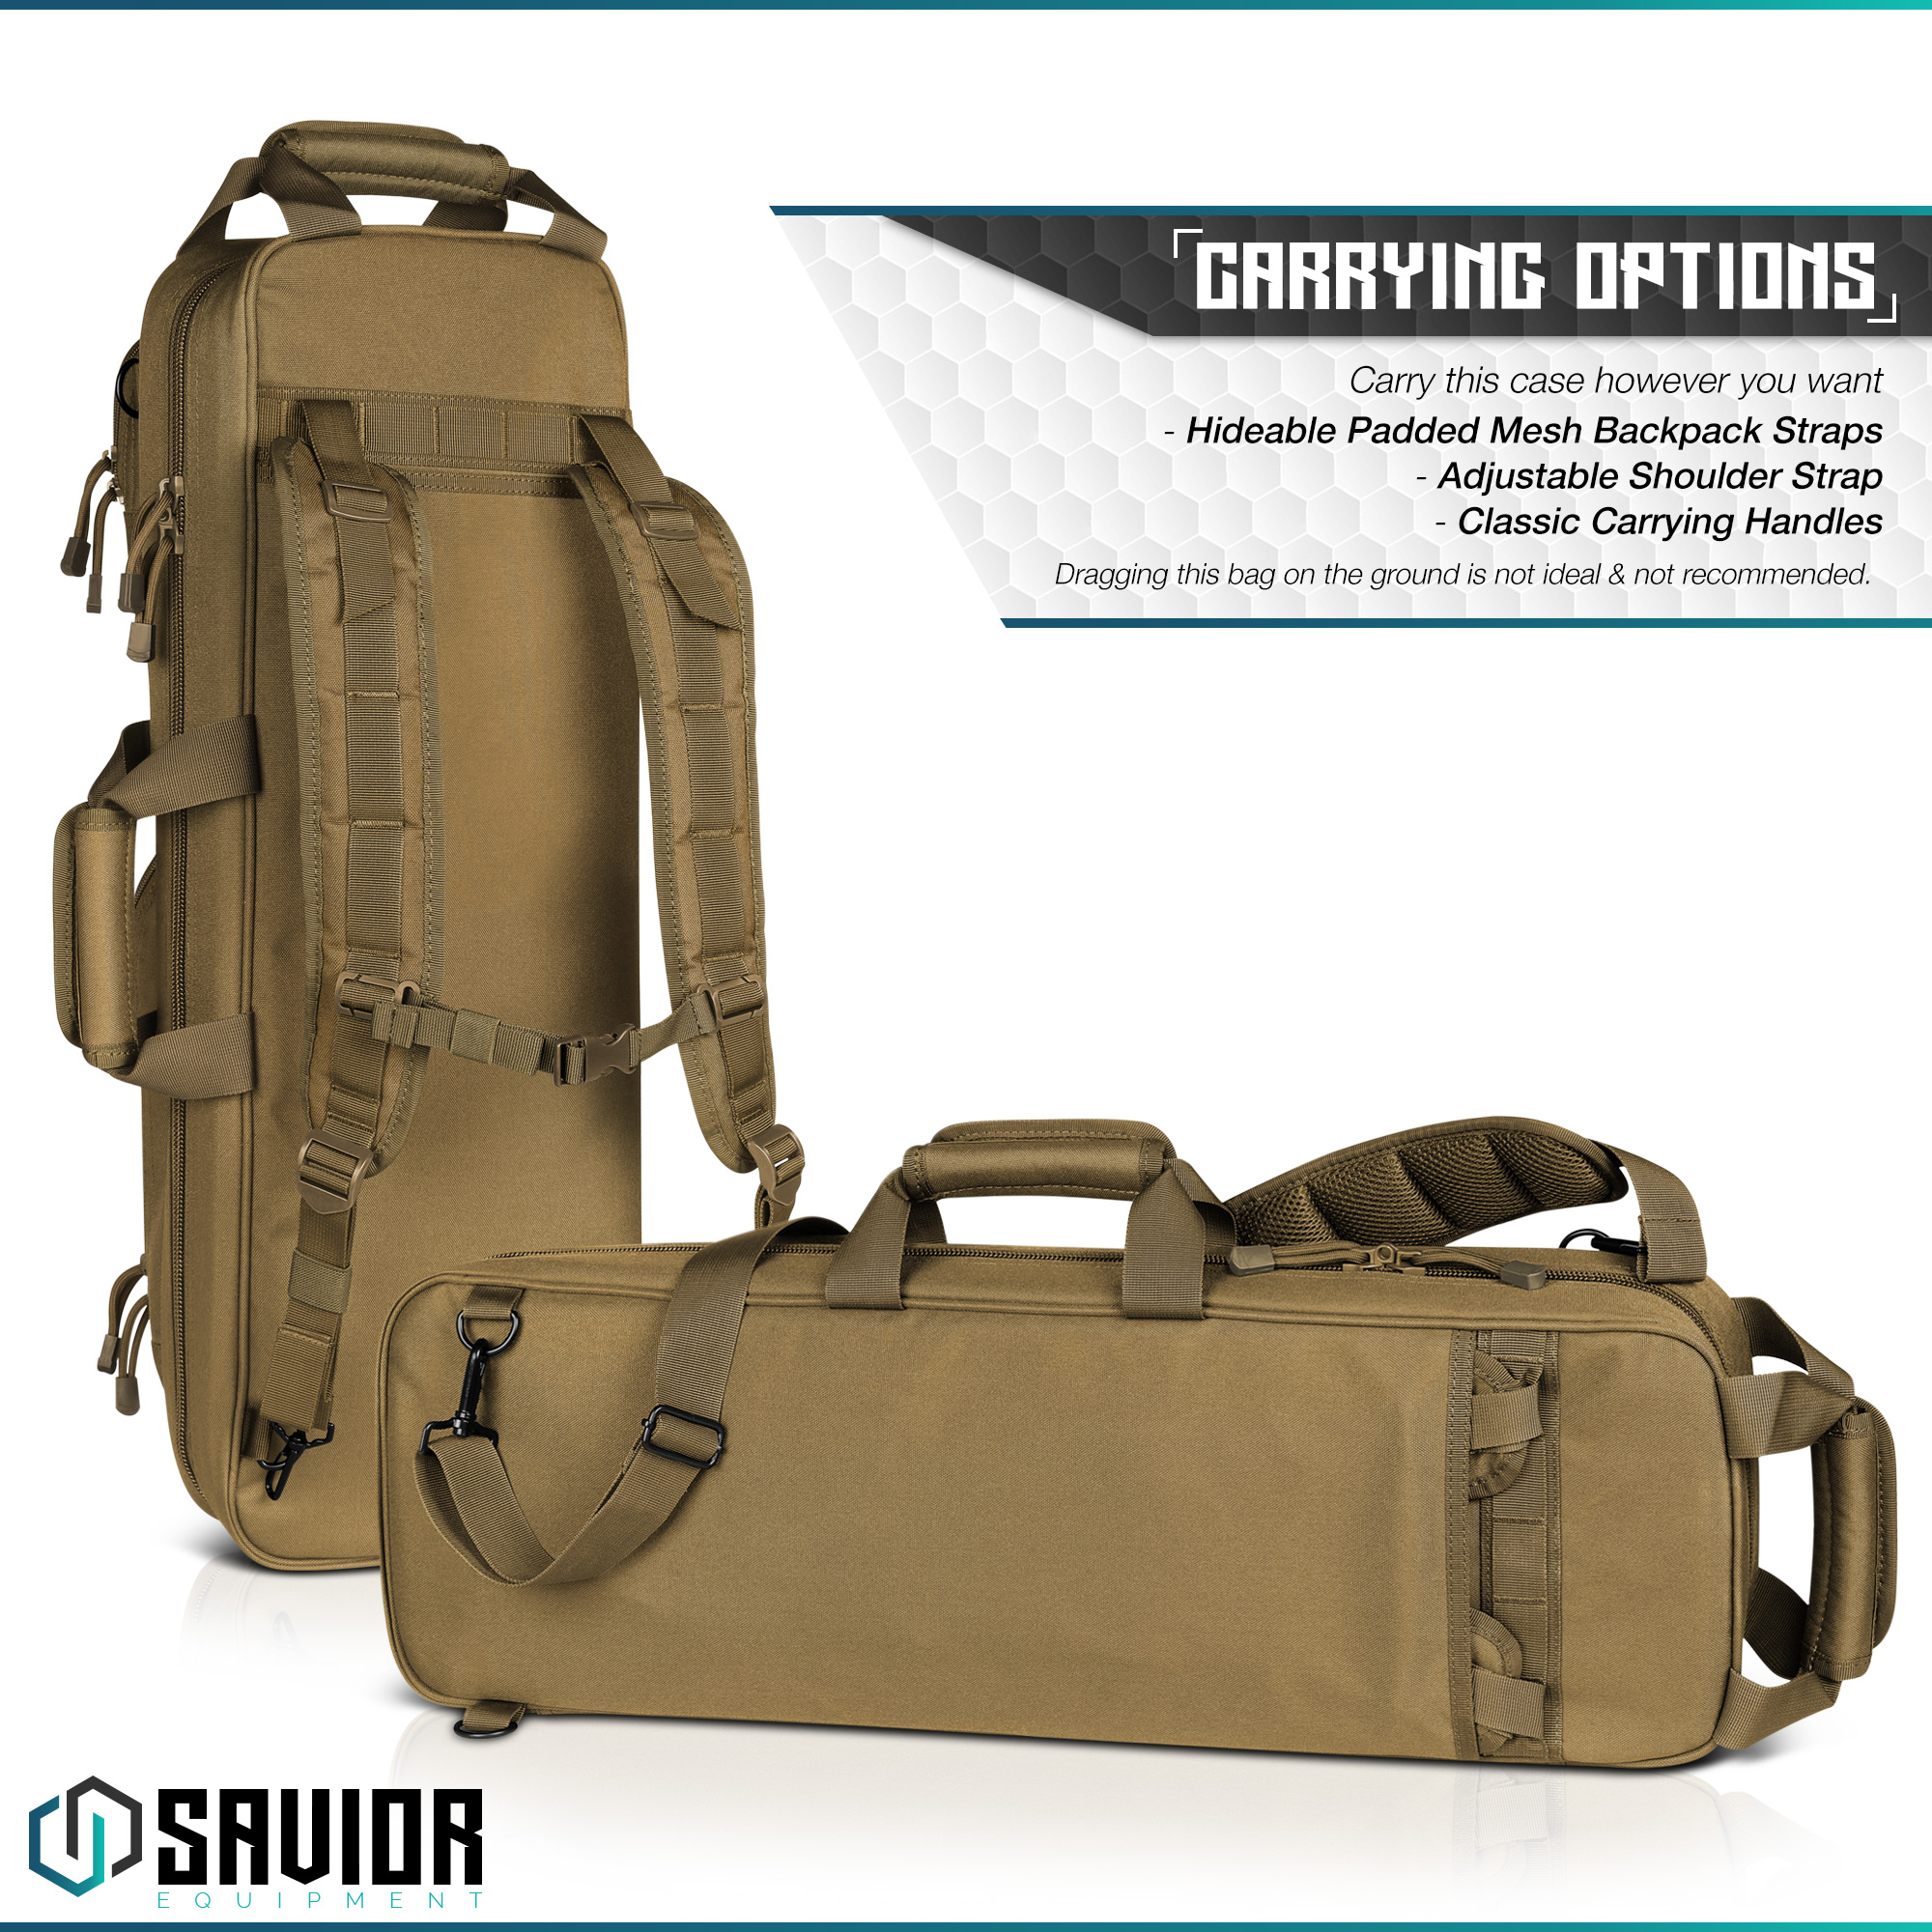 Savior-Tactical-Urban-Takedown-Bag-Carbine-Rifle-Padded-Shotgun-Firearm-Backpack thumbnail 6